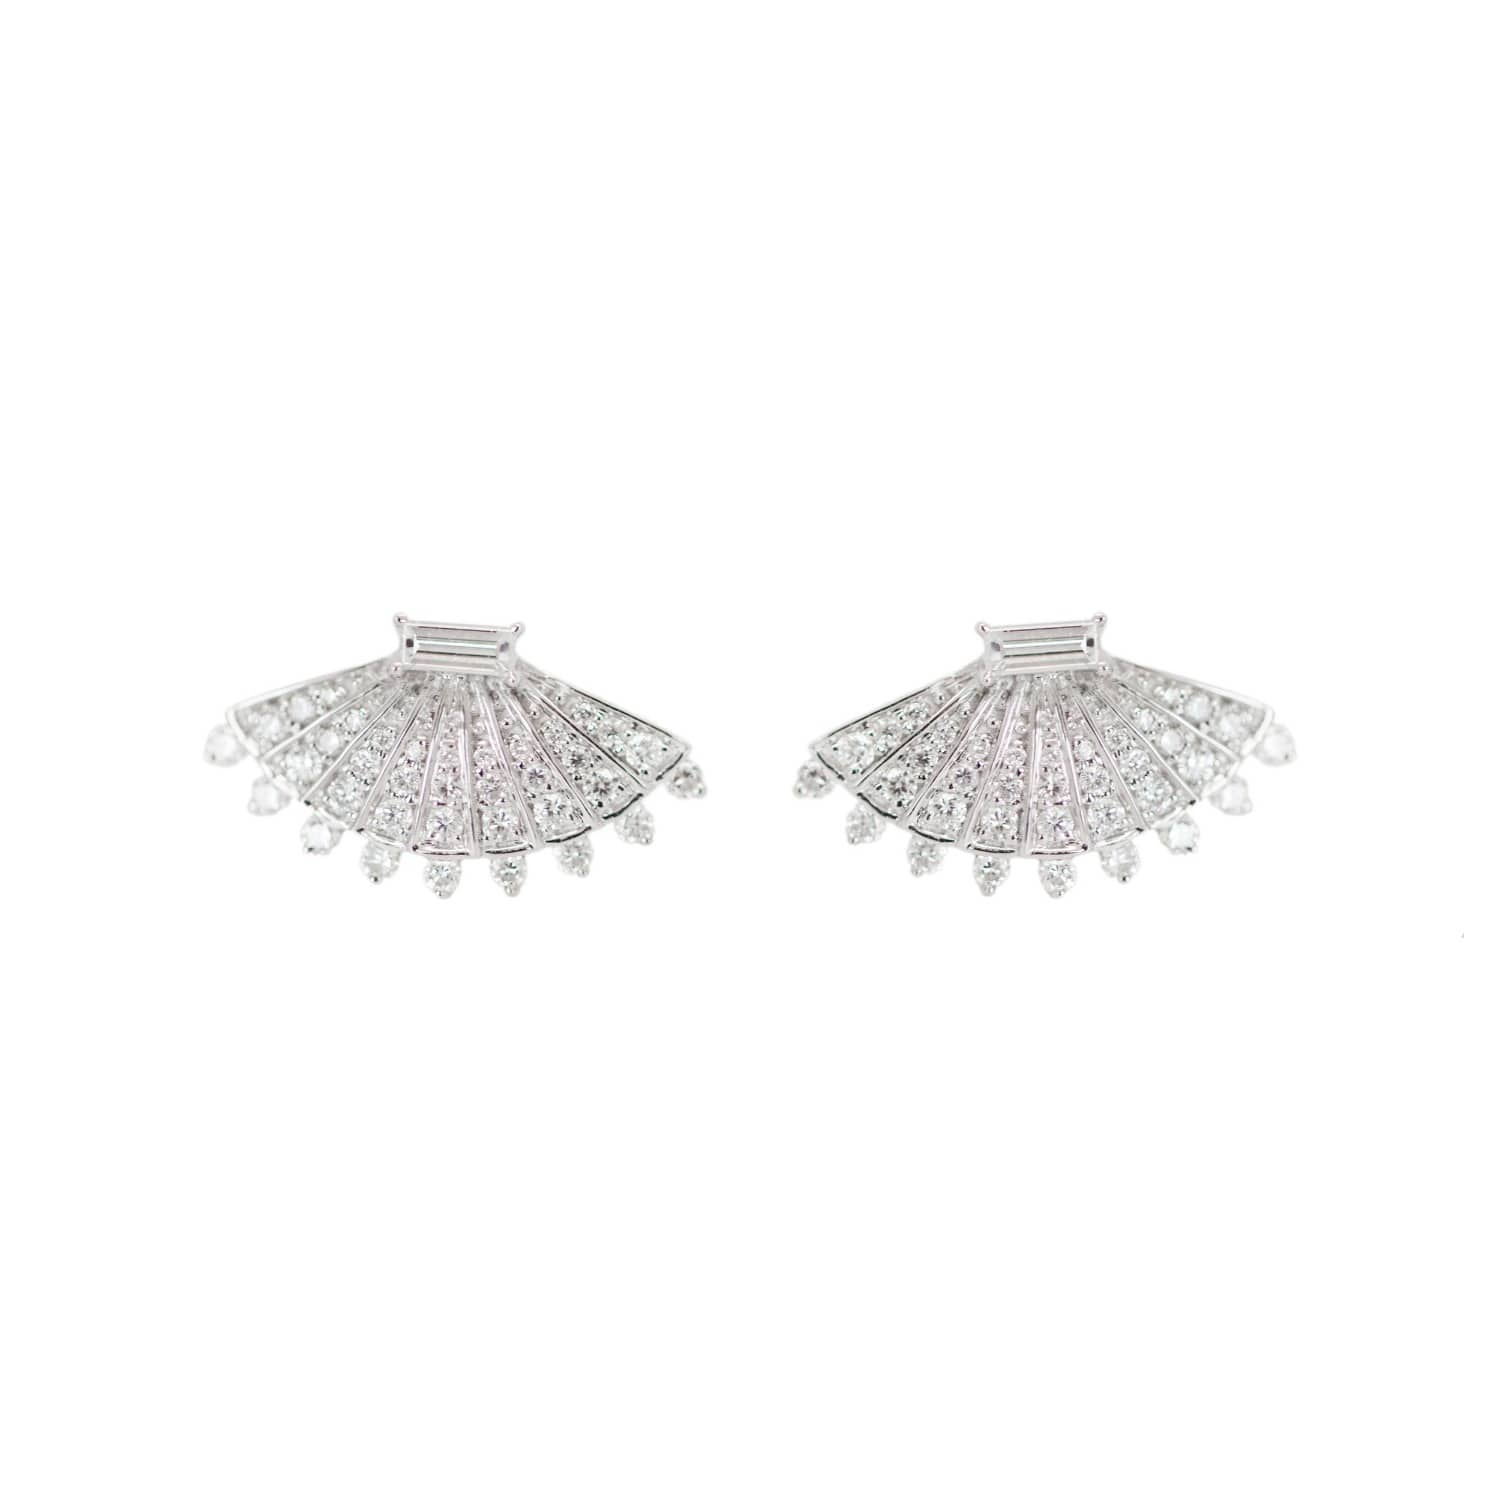 thoughtful engineered crown high prong a diamond uncomplicated elegant diamonds accentuated ceiling beautiful on string by classic product of perfectly single each an rounded polish and